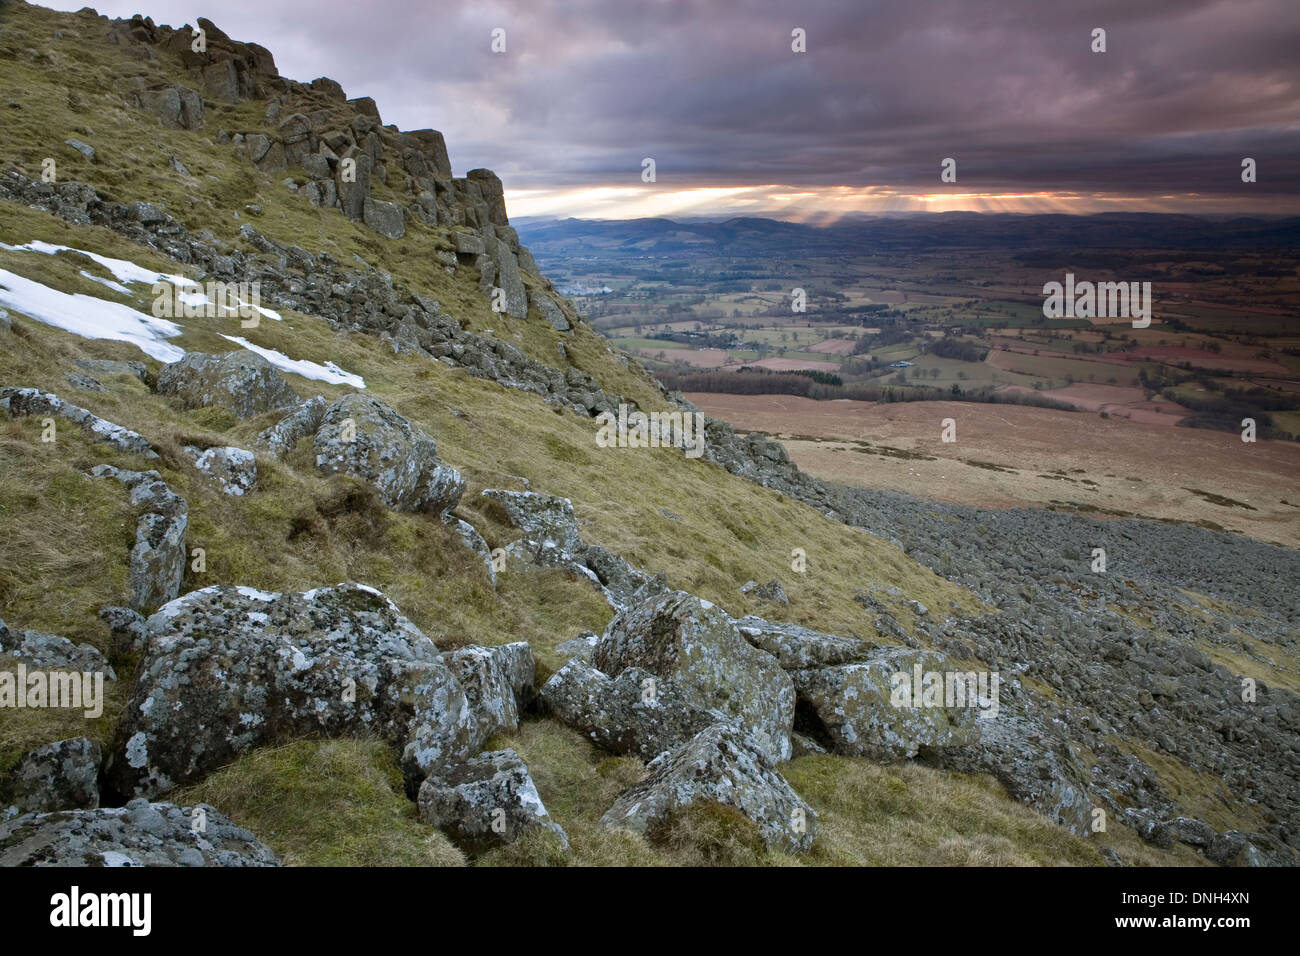 Lichen covered rocks on Clee Hill while the sun shines through the clouds creating Crepuscular rays in the background. Stock Photo